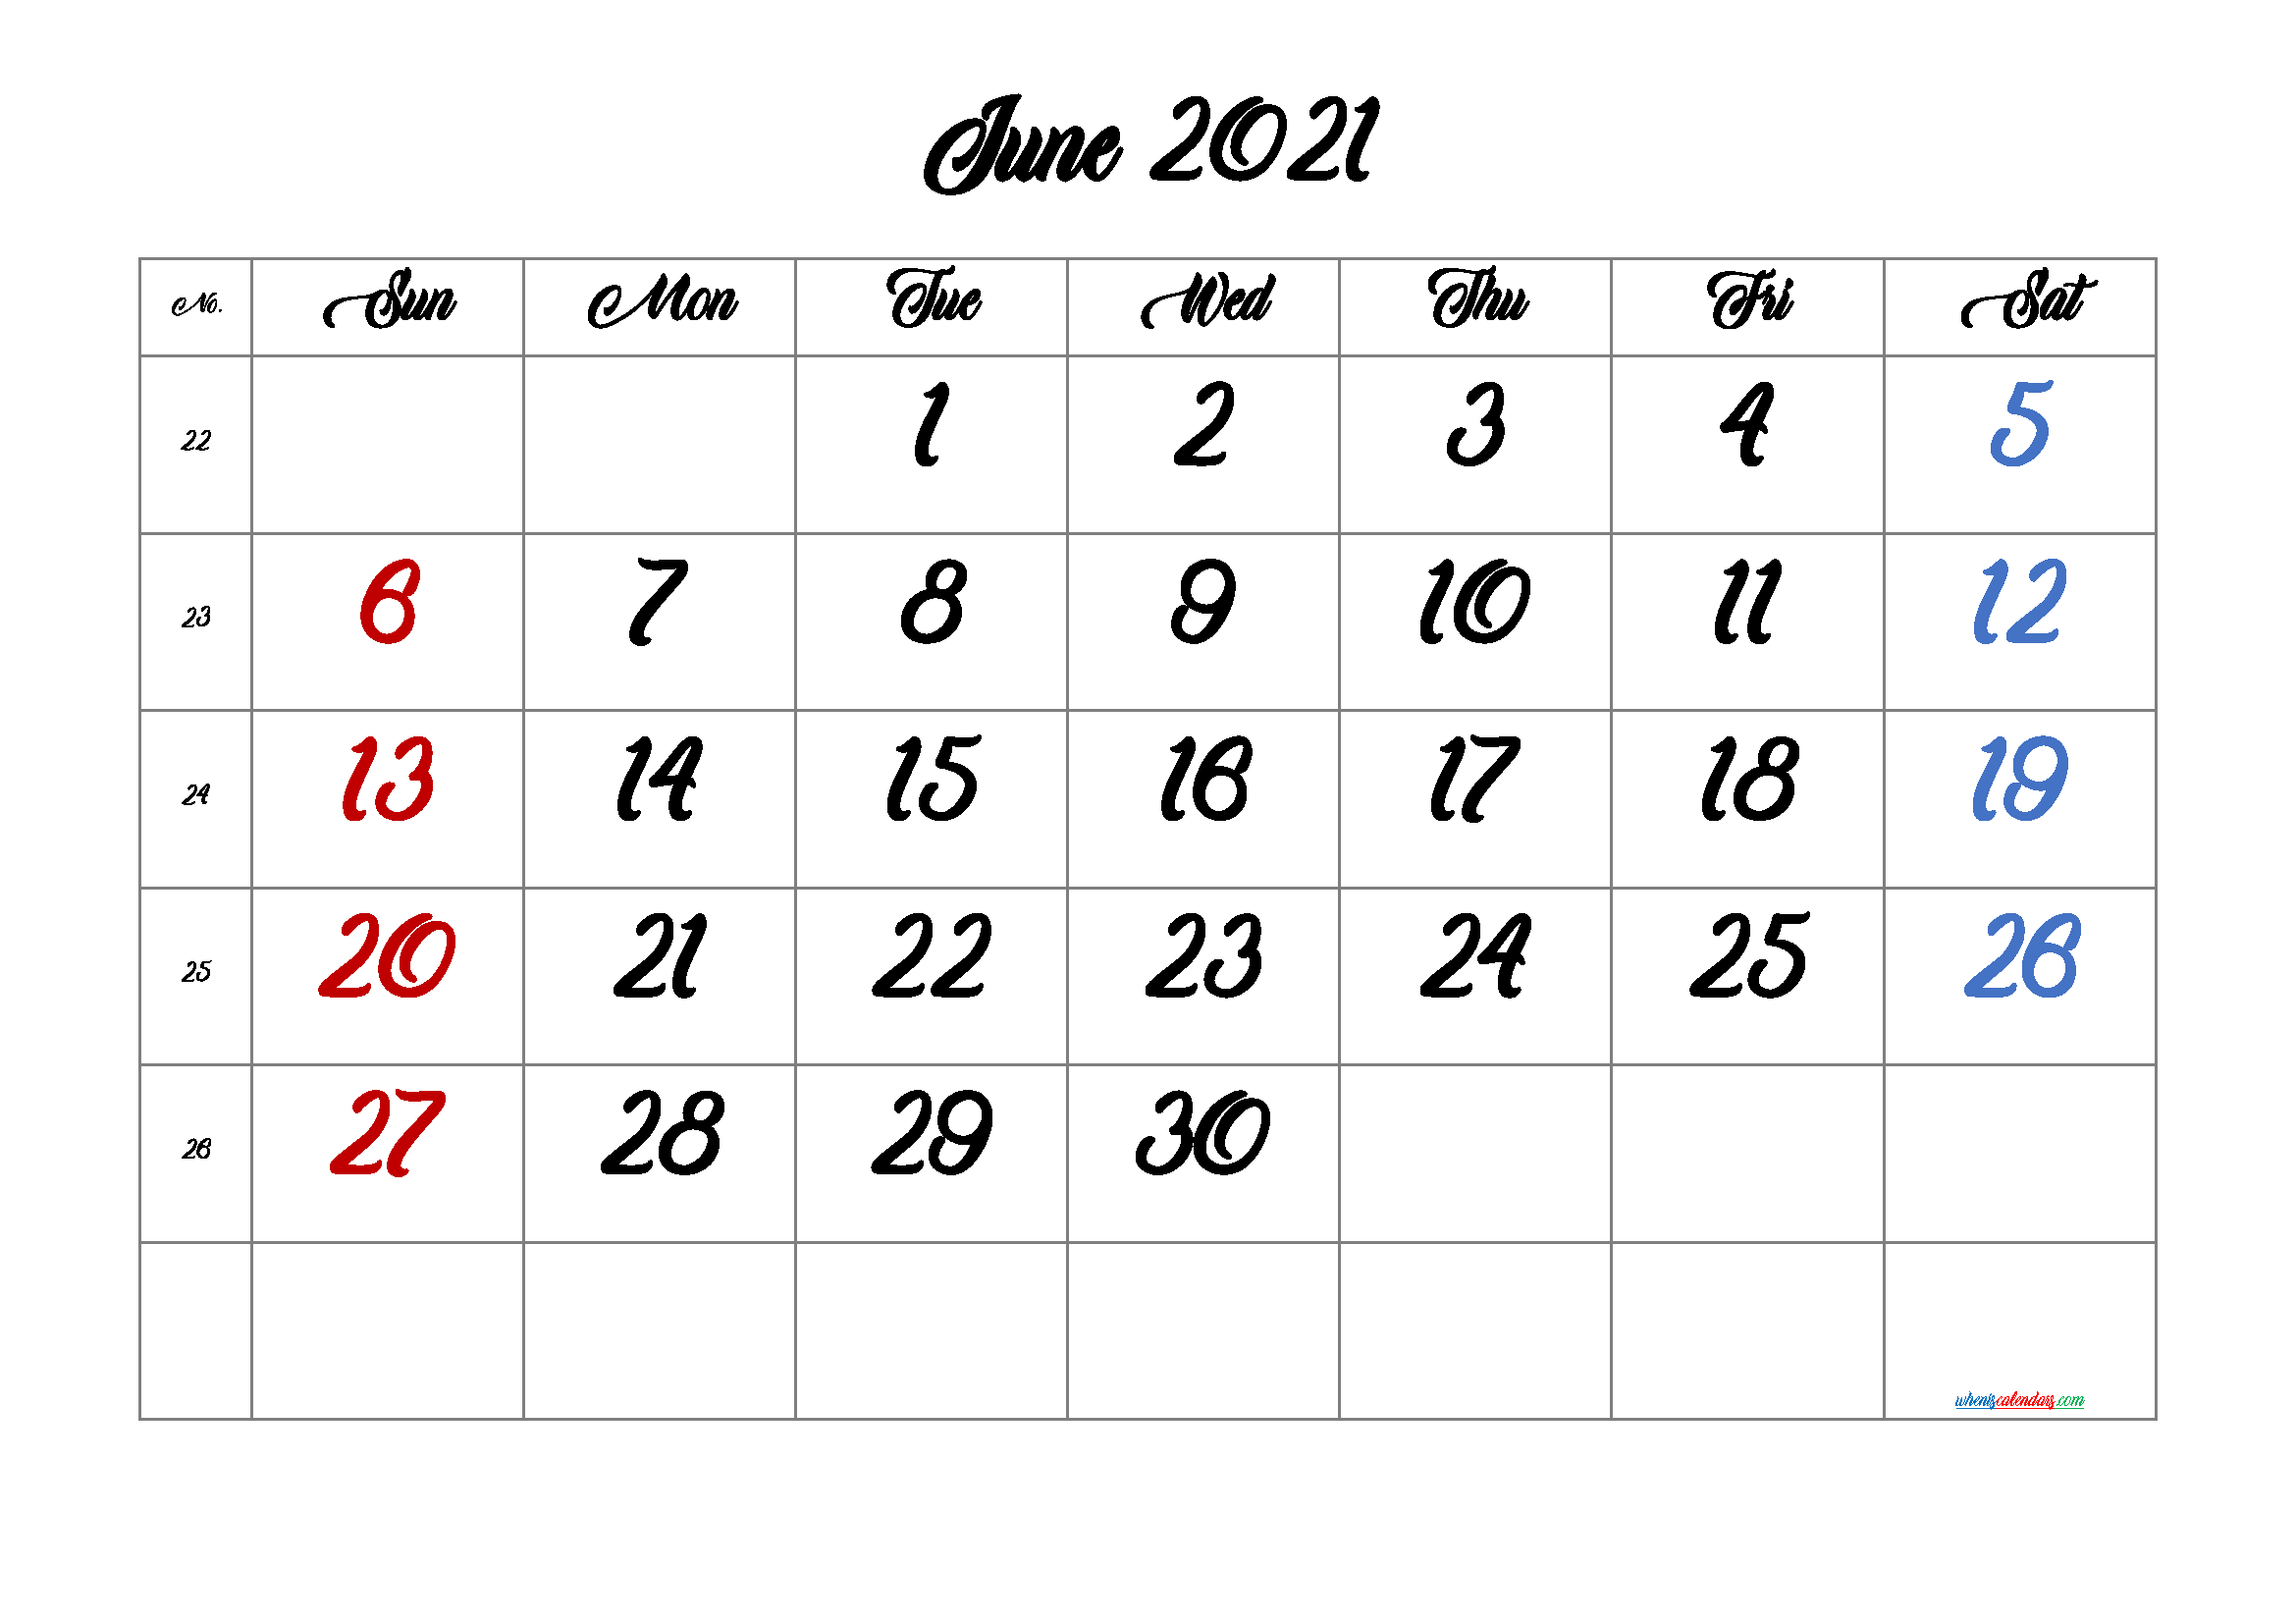 Printable Calendar for June 2021